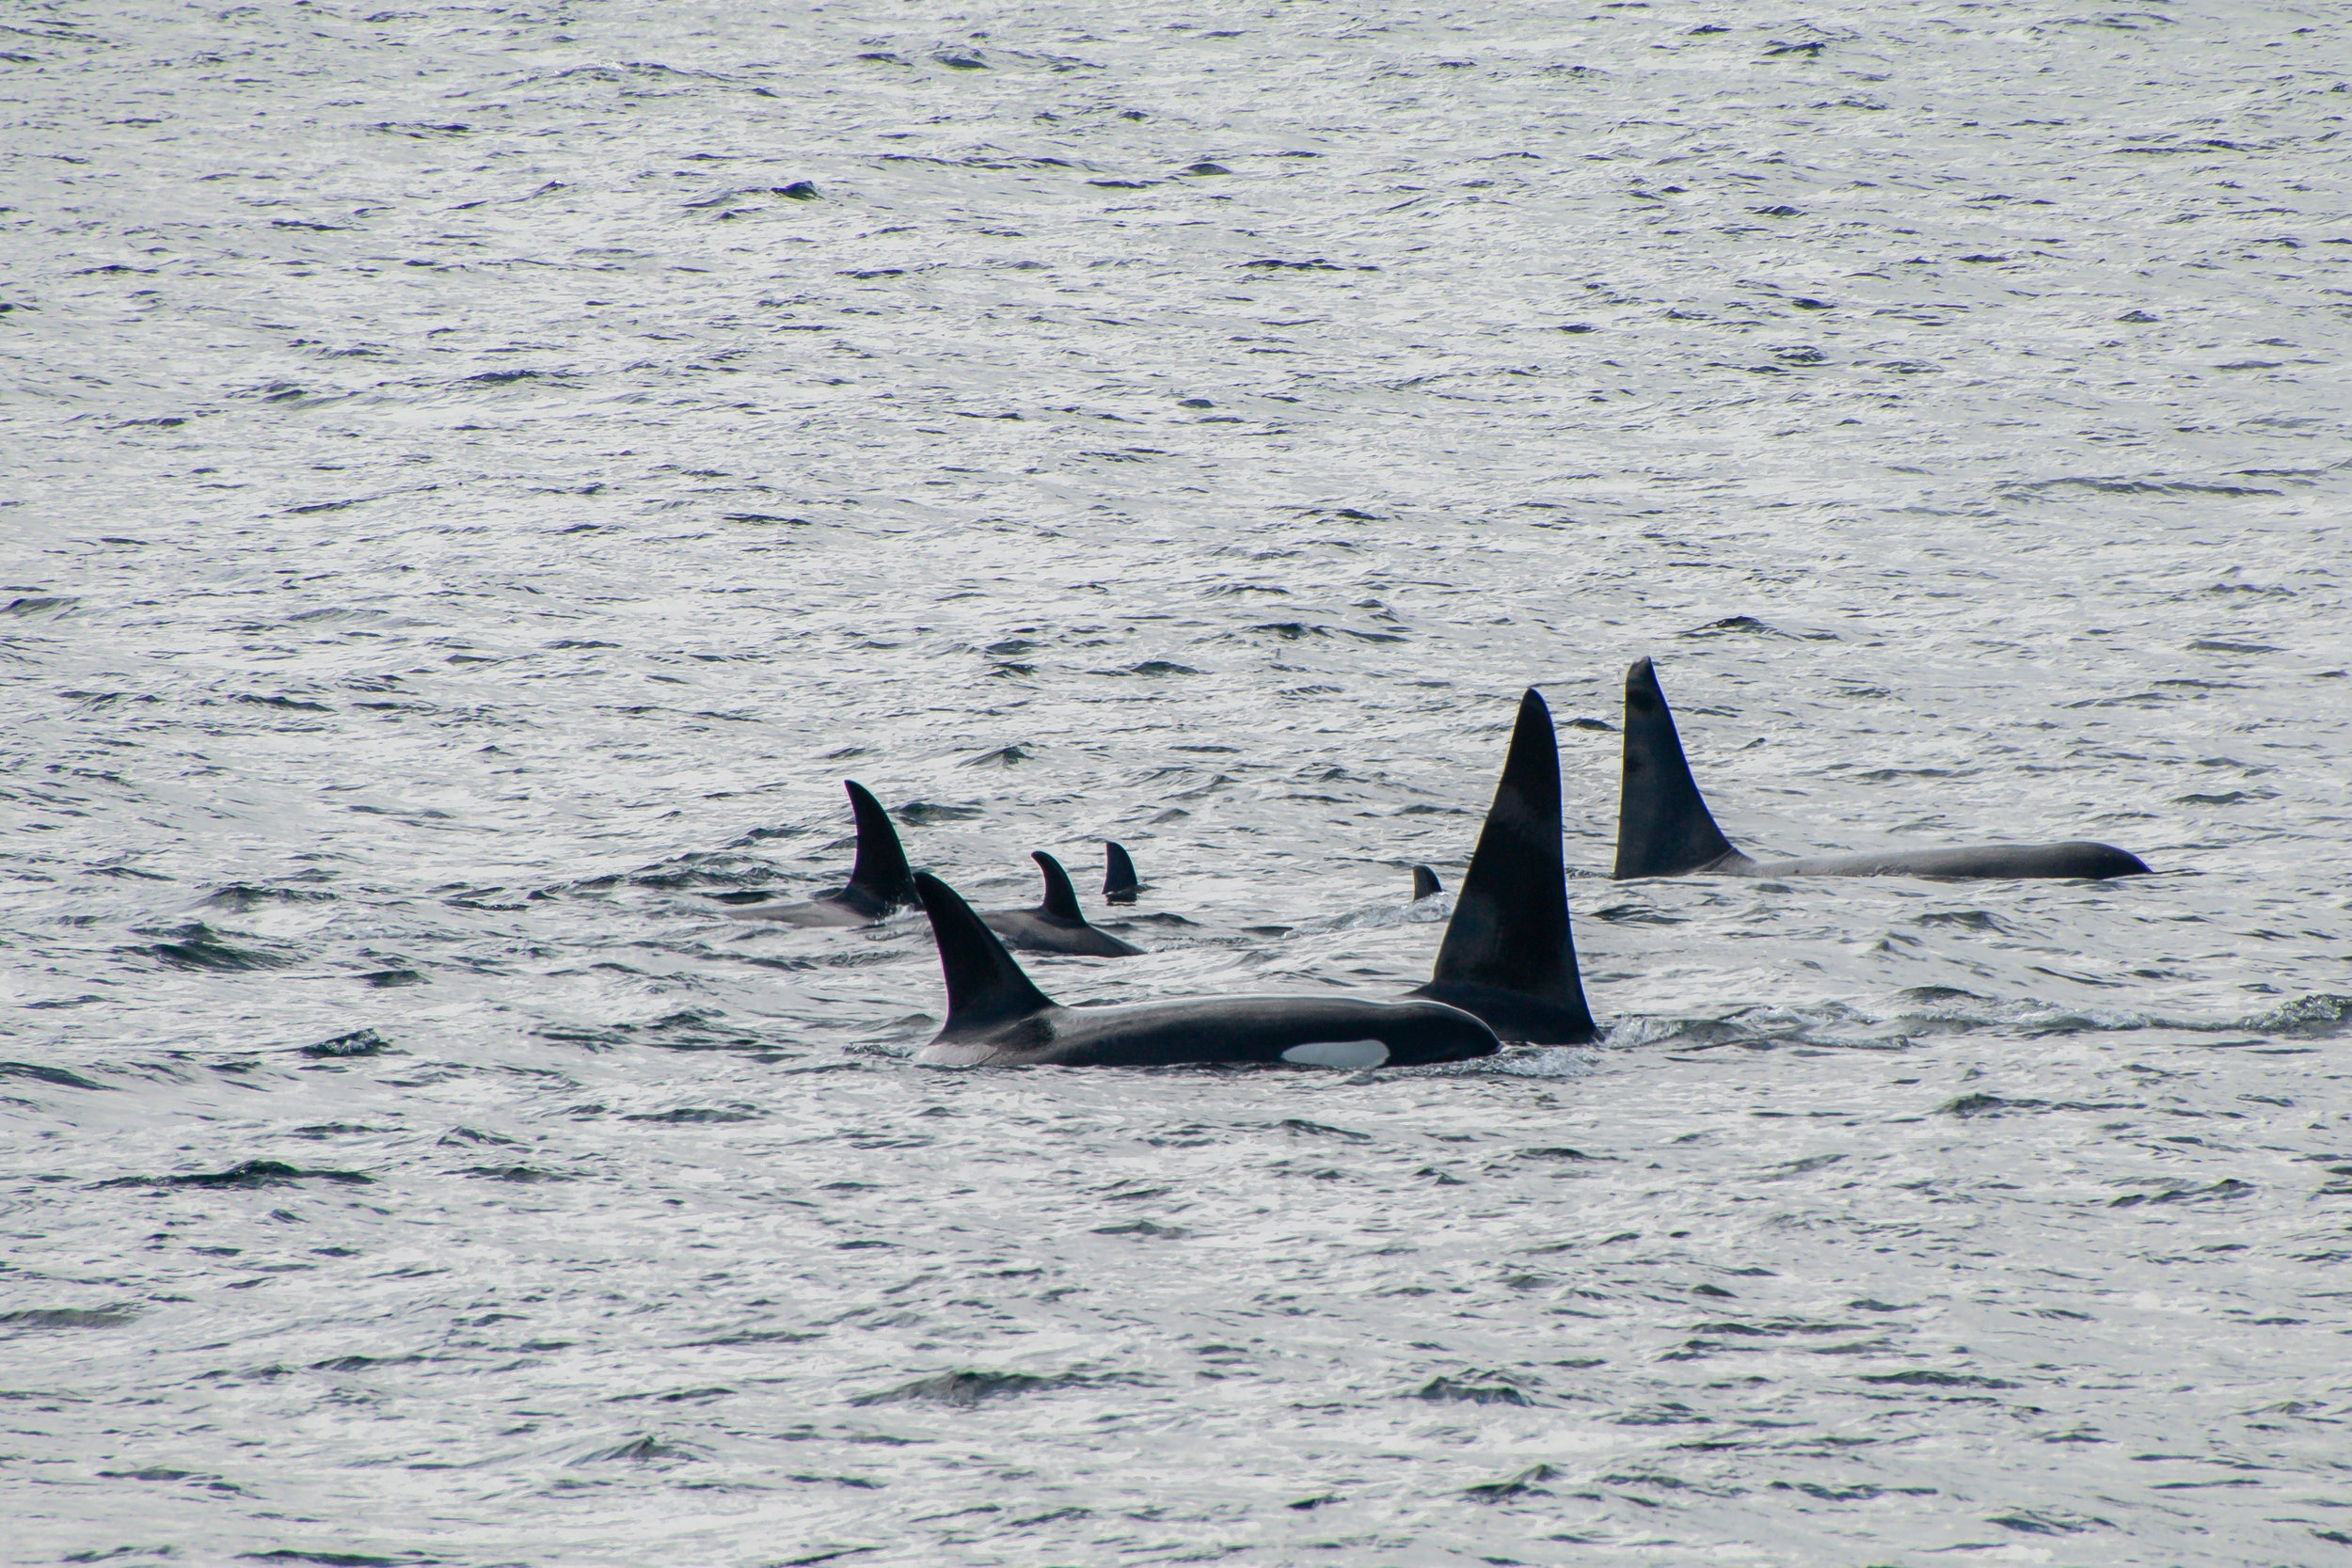 A family of Orcas swimming through Chatham Strait, Southeast Alaska.